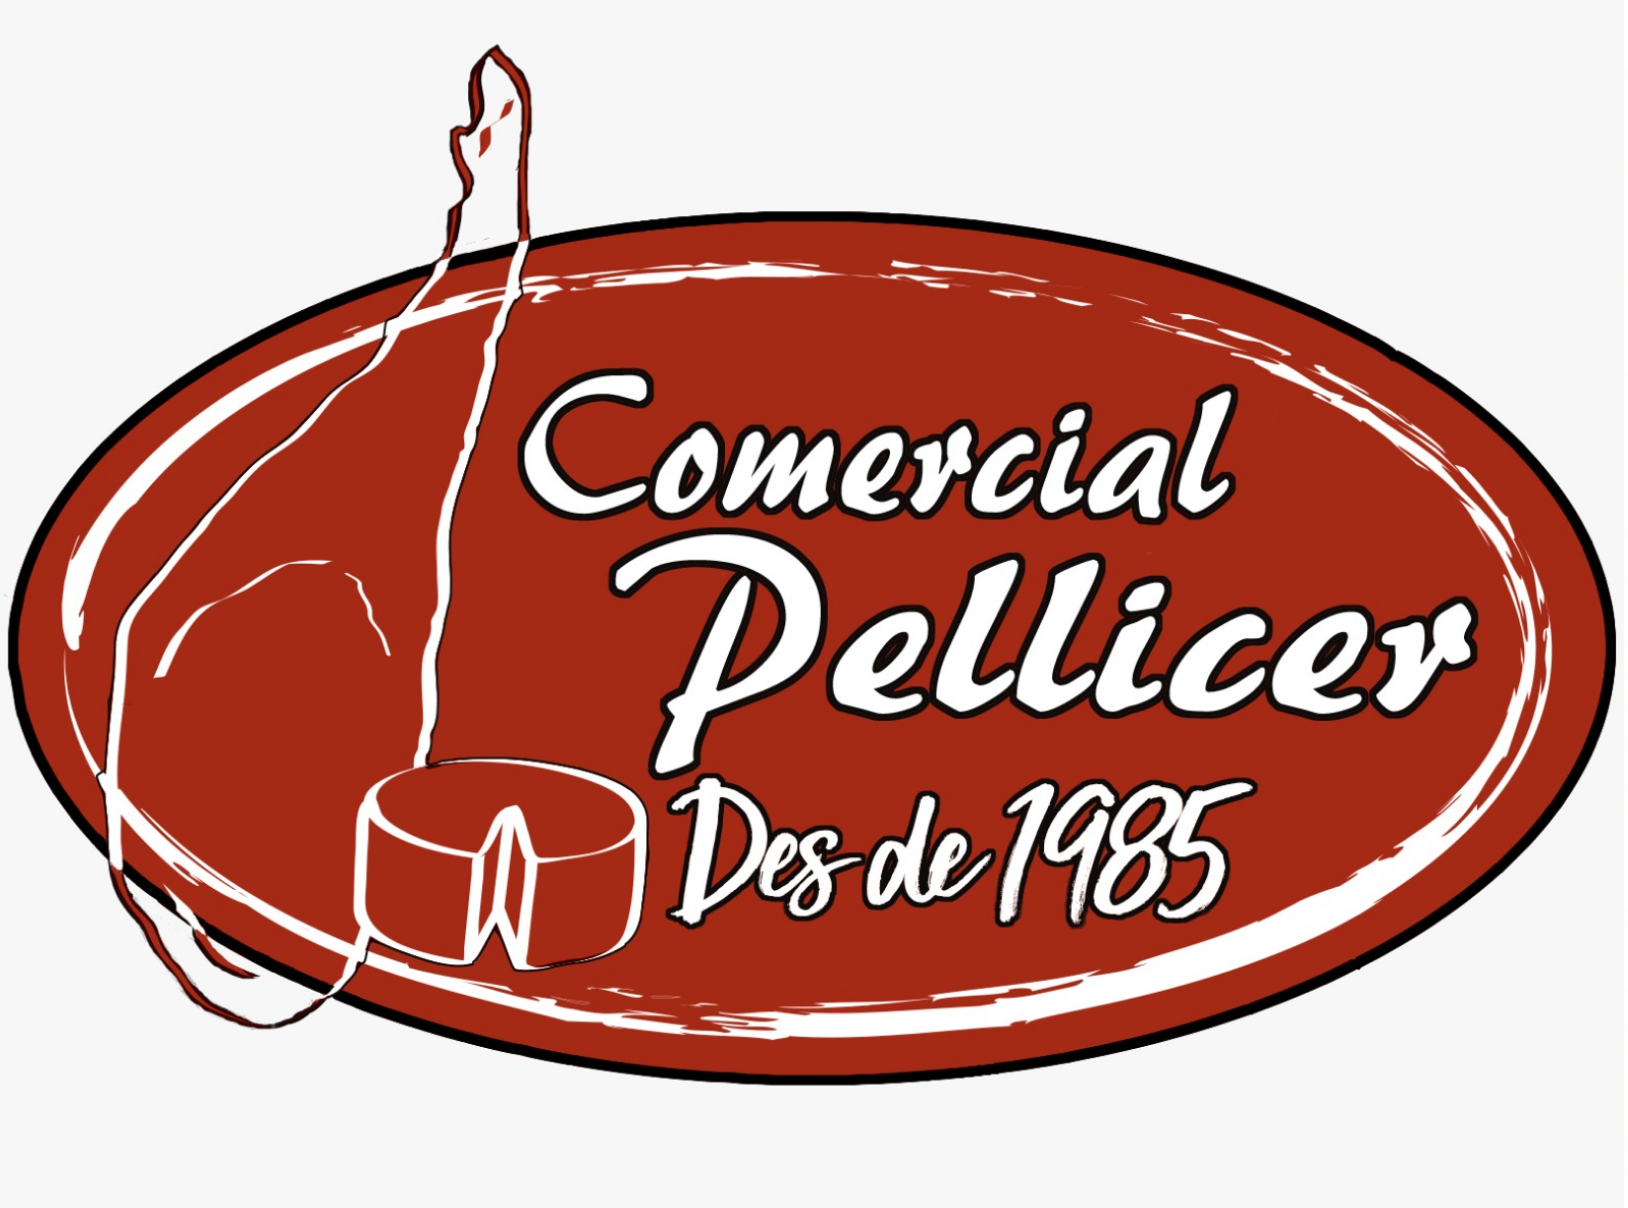 Comerical Pellicer